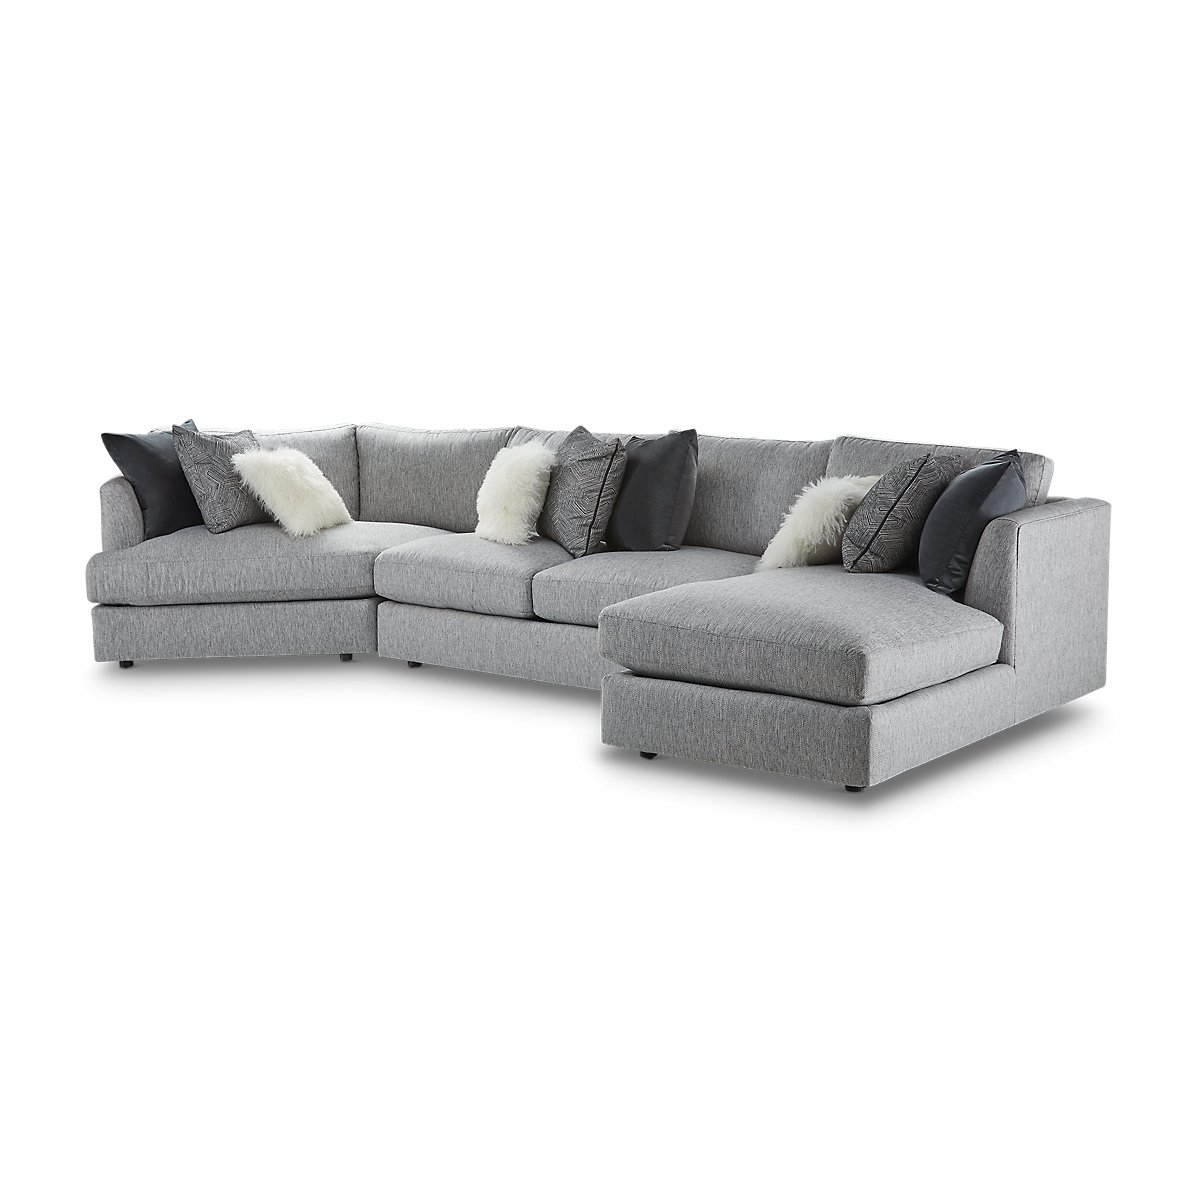 Sydney Gray Fabric Right Facing Chaise Cuddler Sectional Living